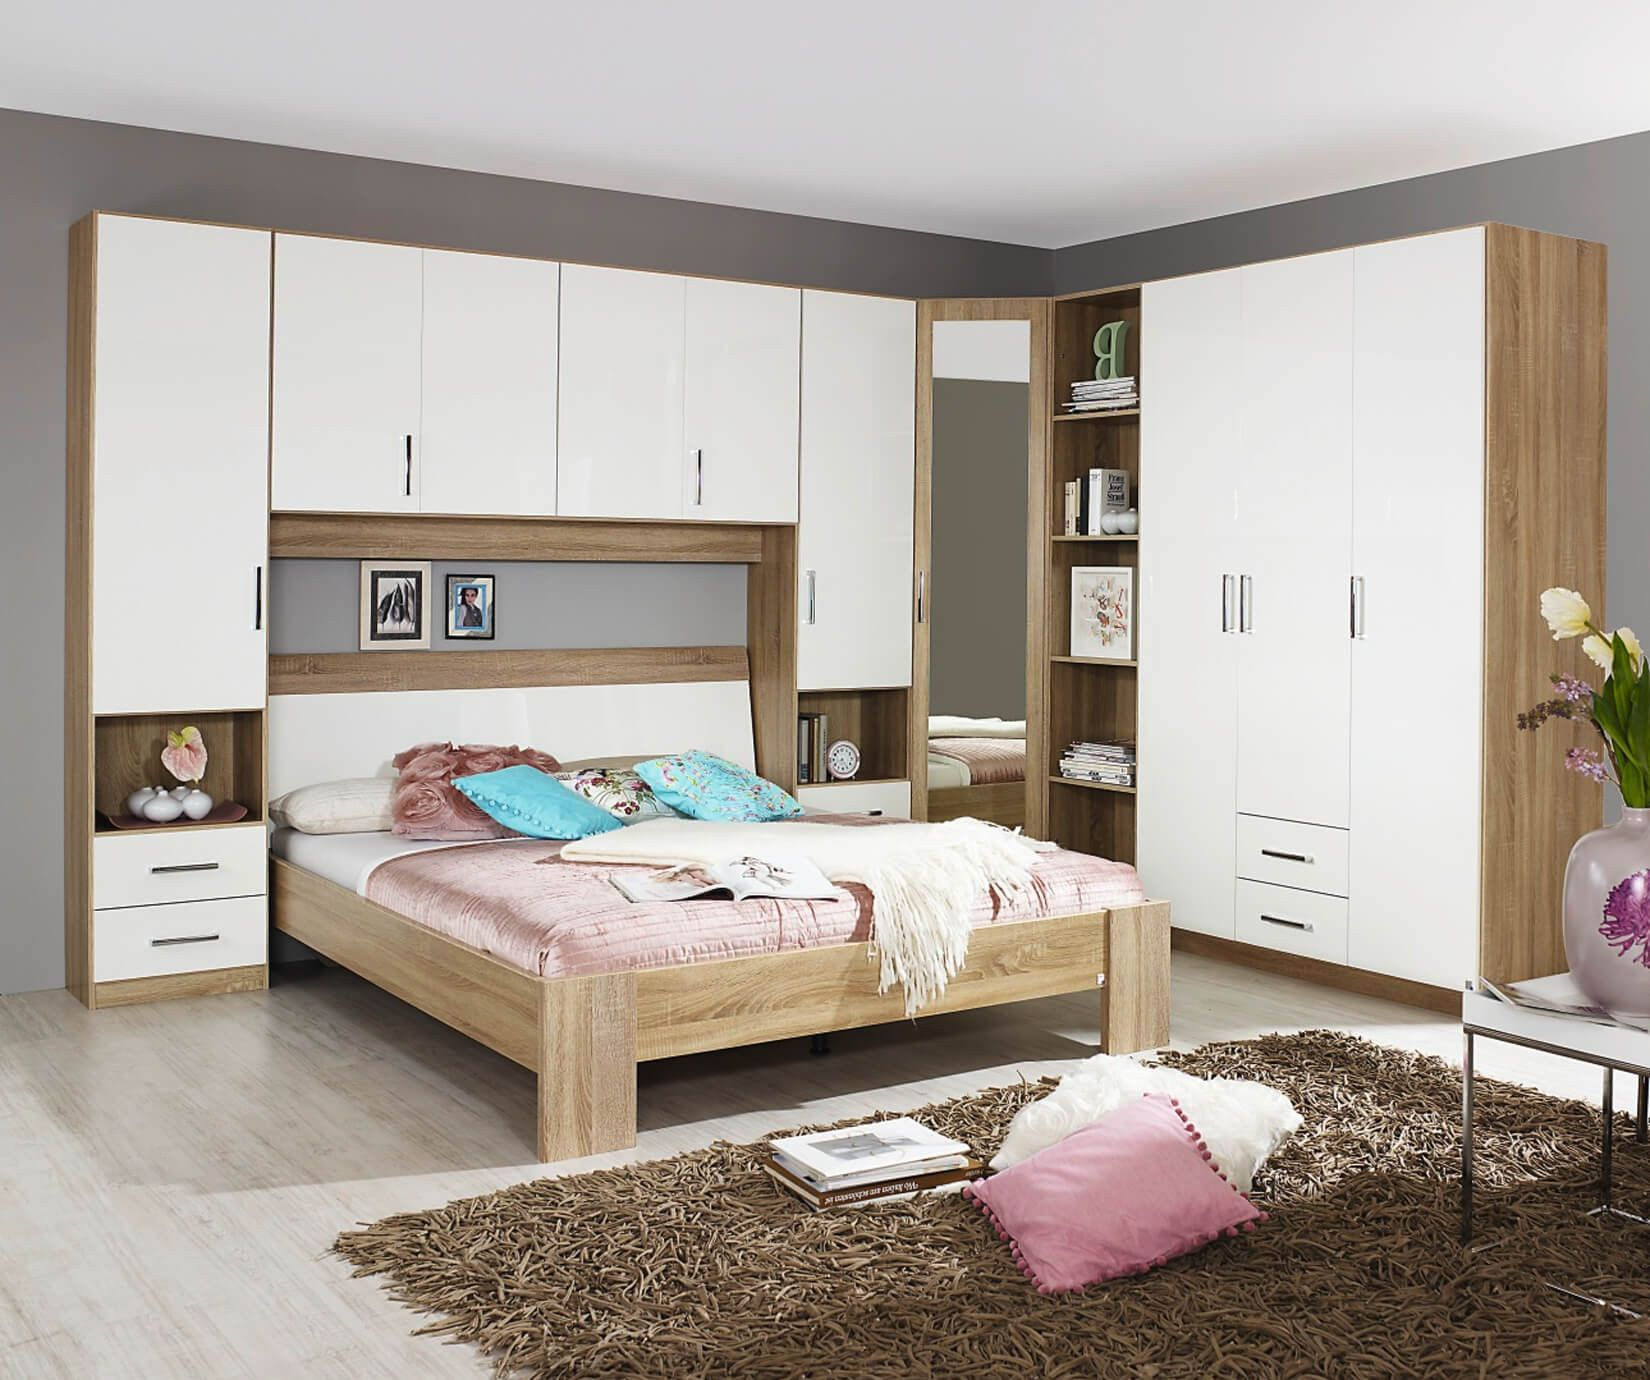 Cologne Overbed Unit Wardrobe Bridge Bedroom Fitment White Gloss  # Muebles Fiasini